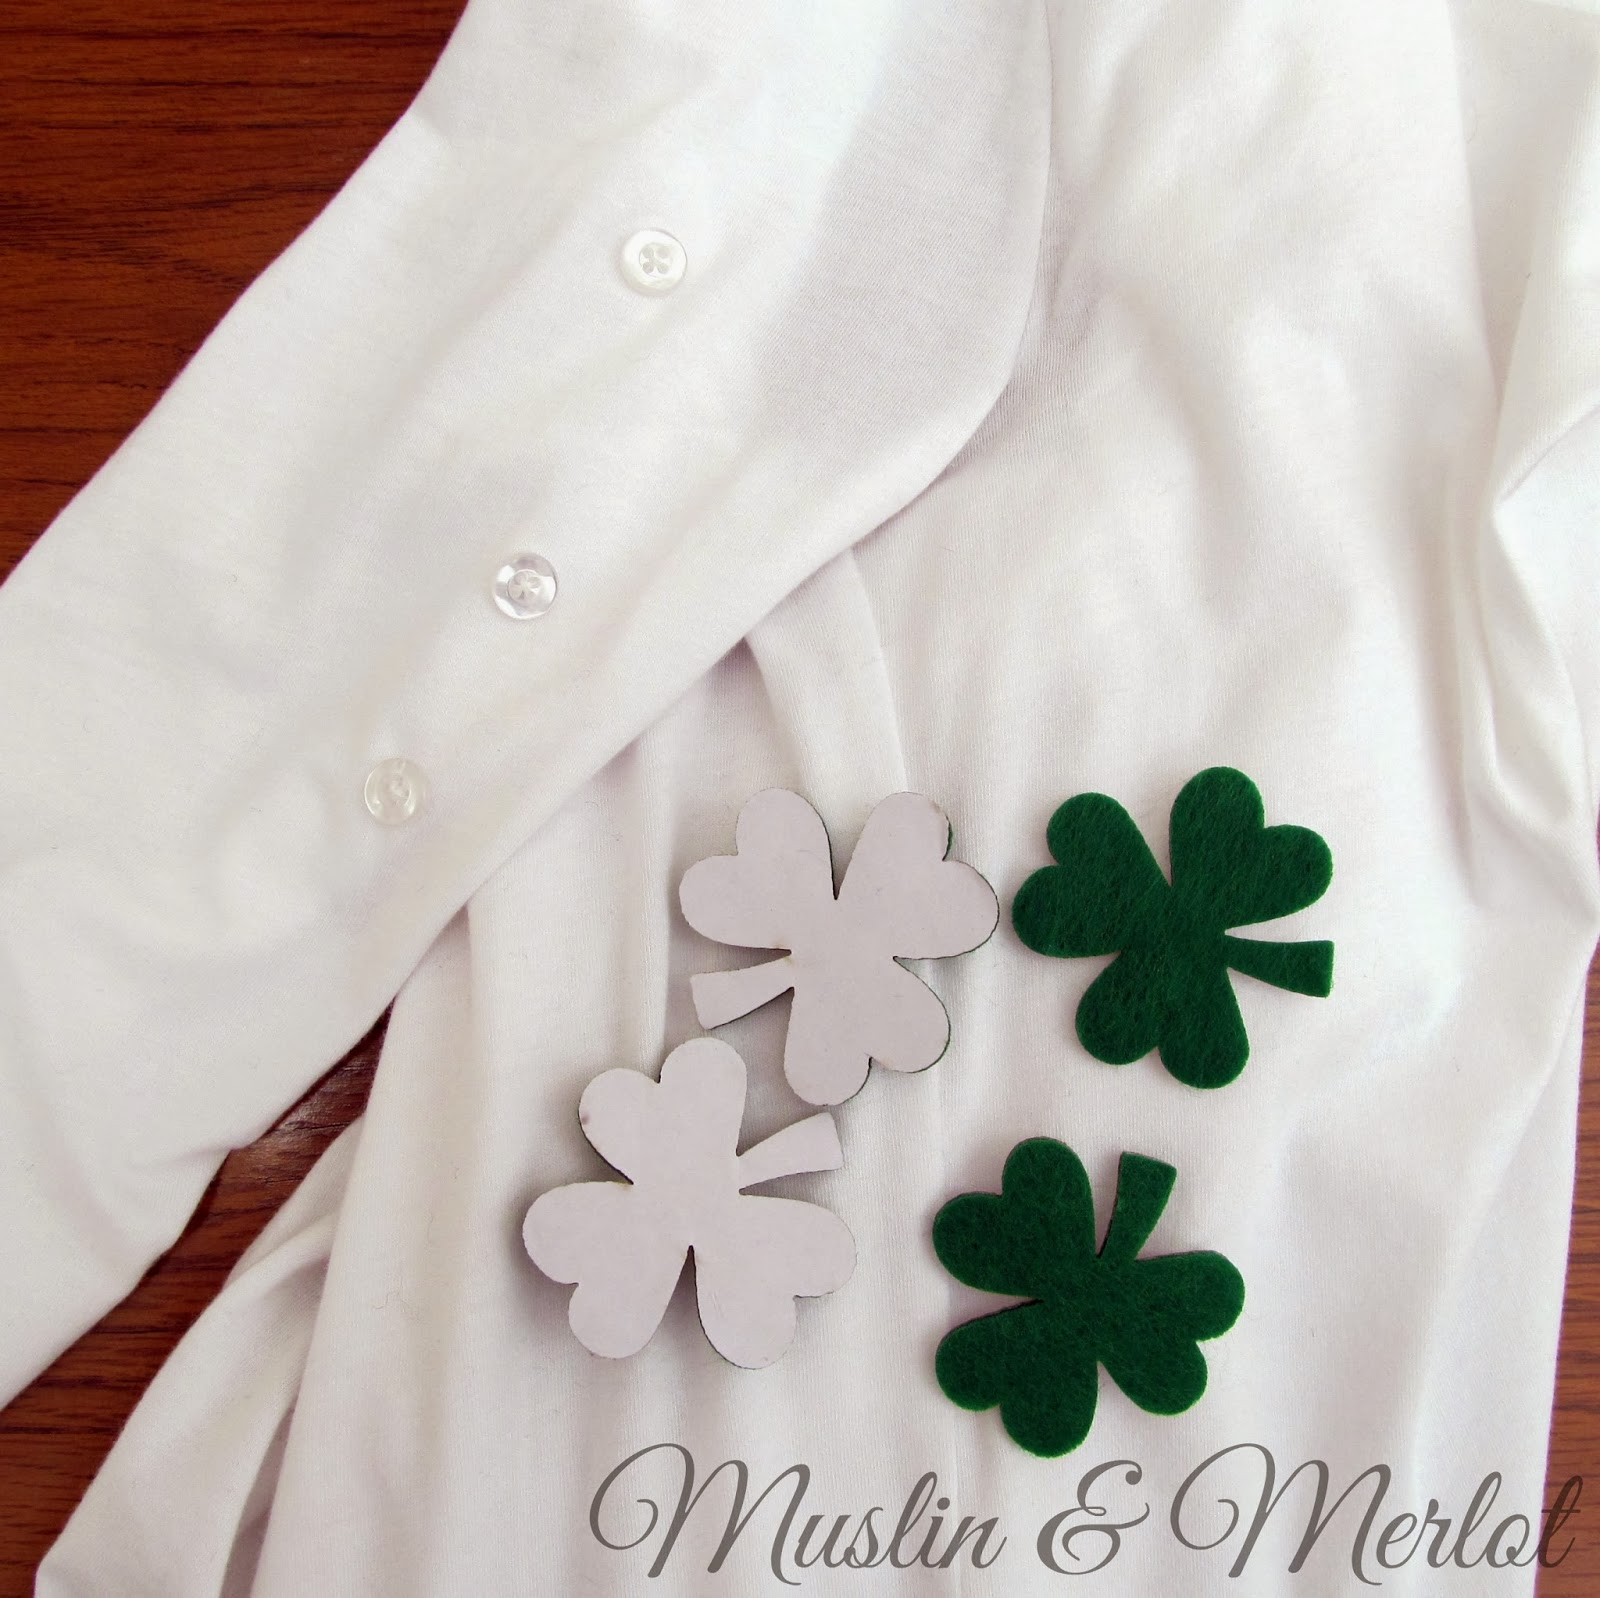 Add shamrocks to your shirt sleeves! by Muslin & Merlot